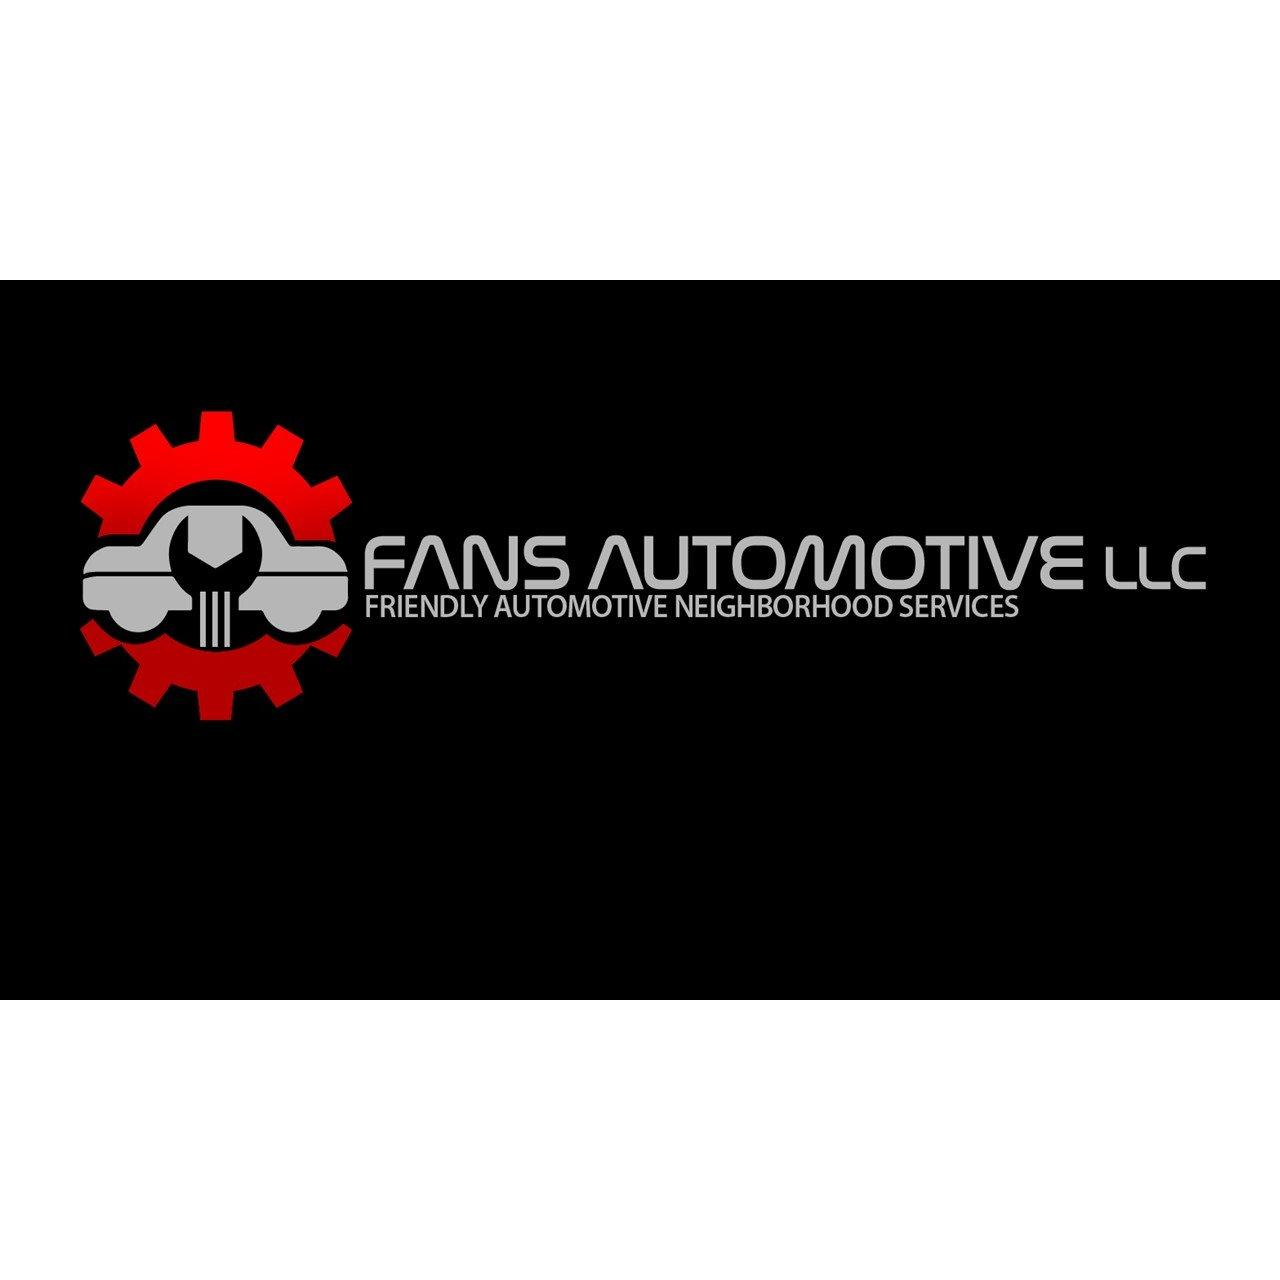 FANS Automotive LLC